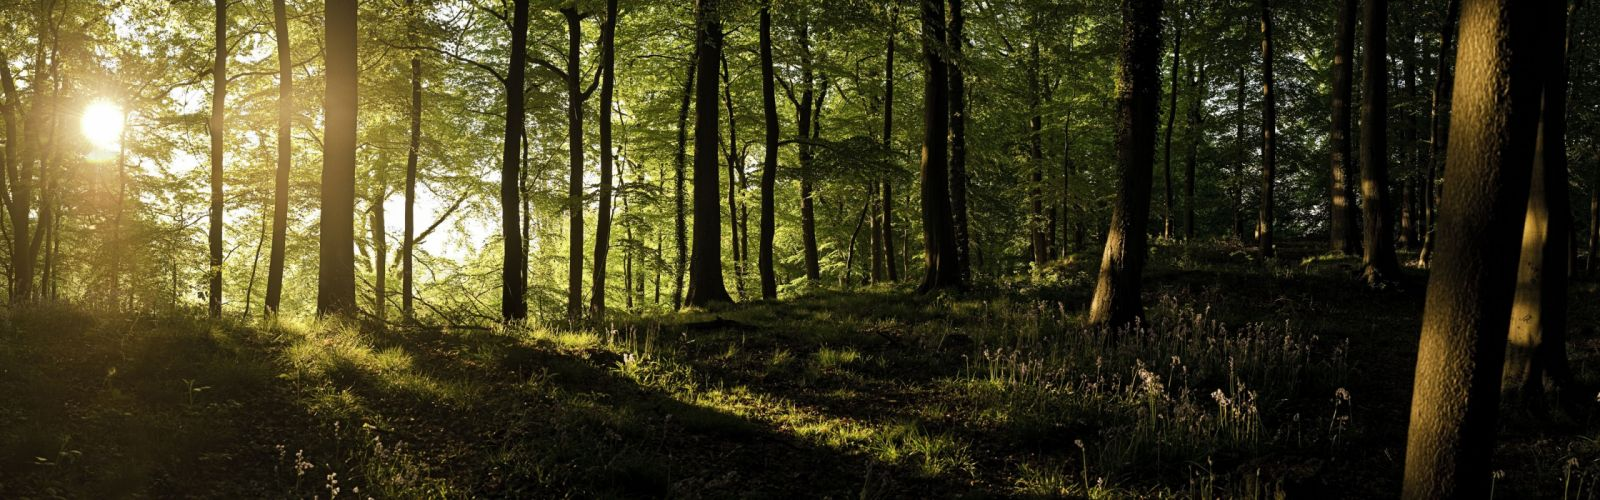 trees England forests sunlight United Kingdom panorama wallpaper